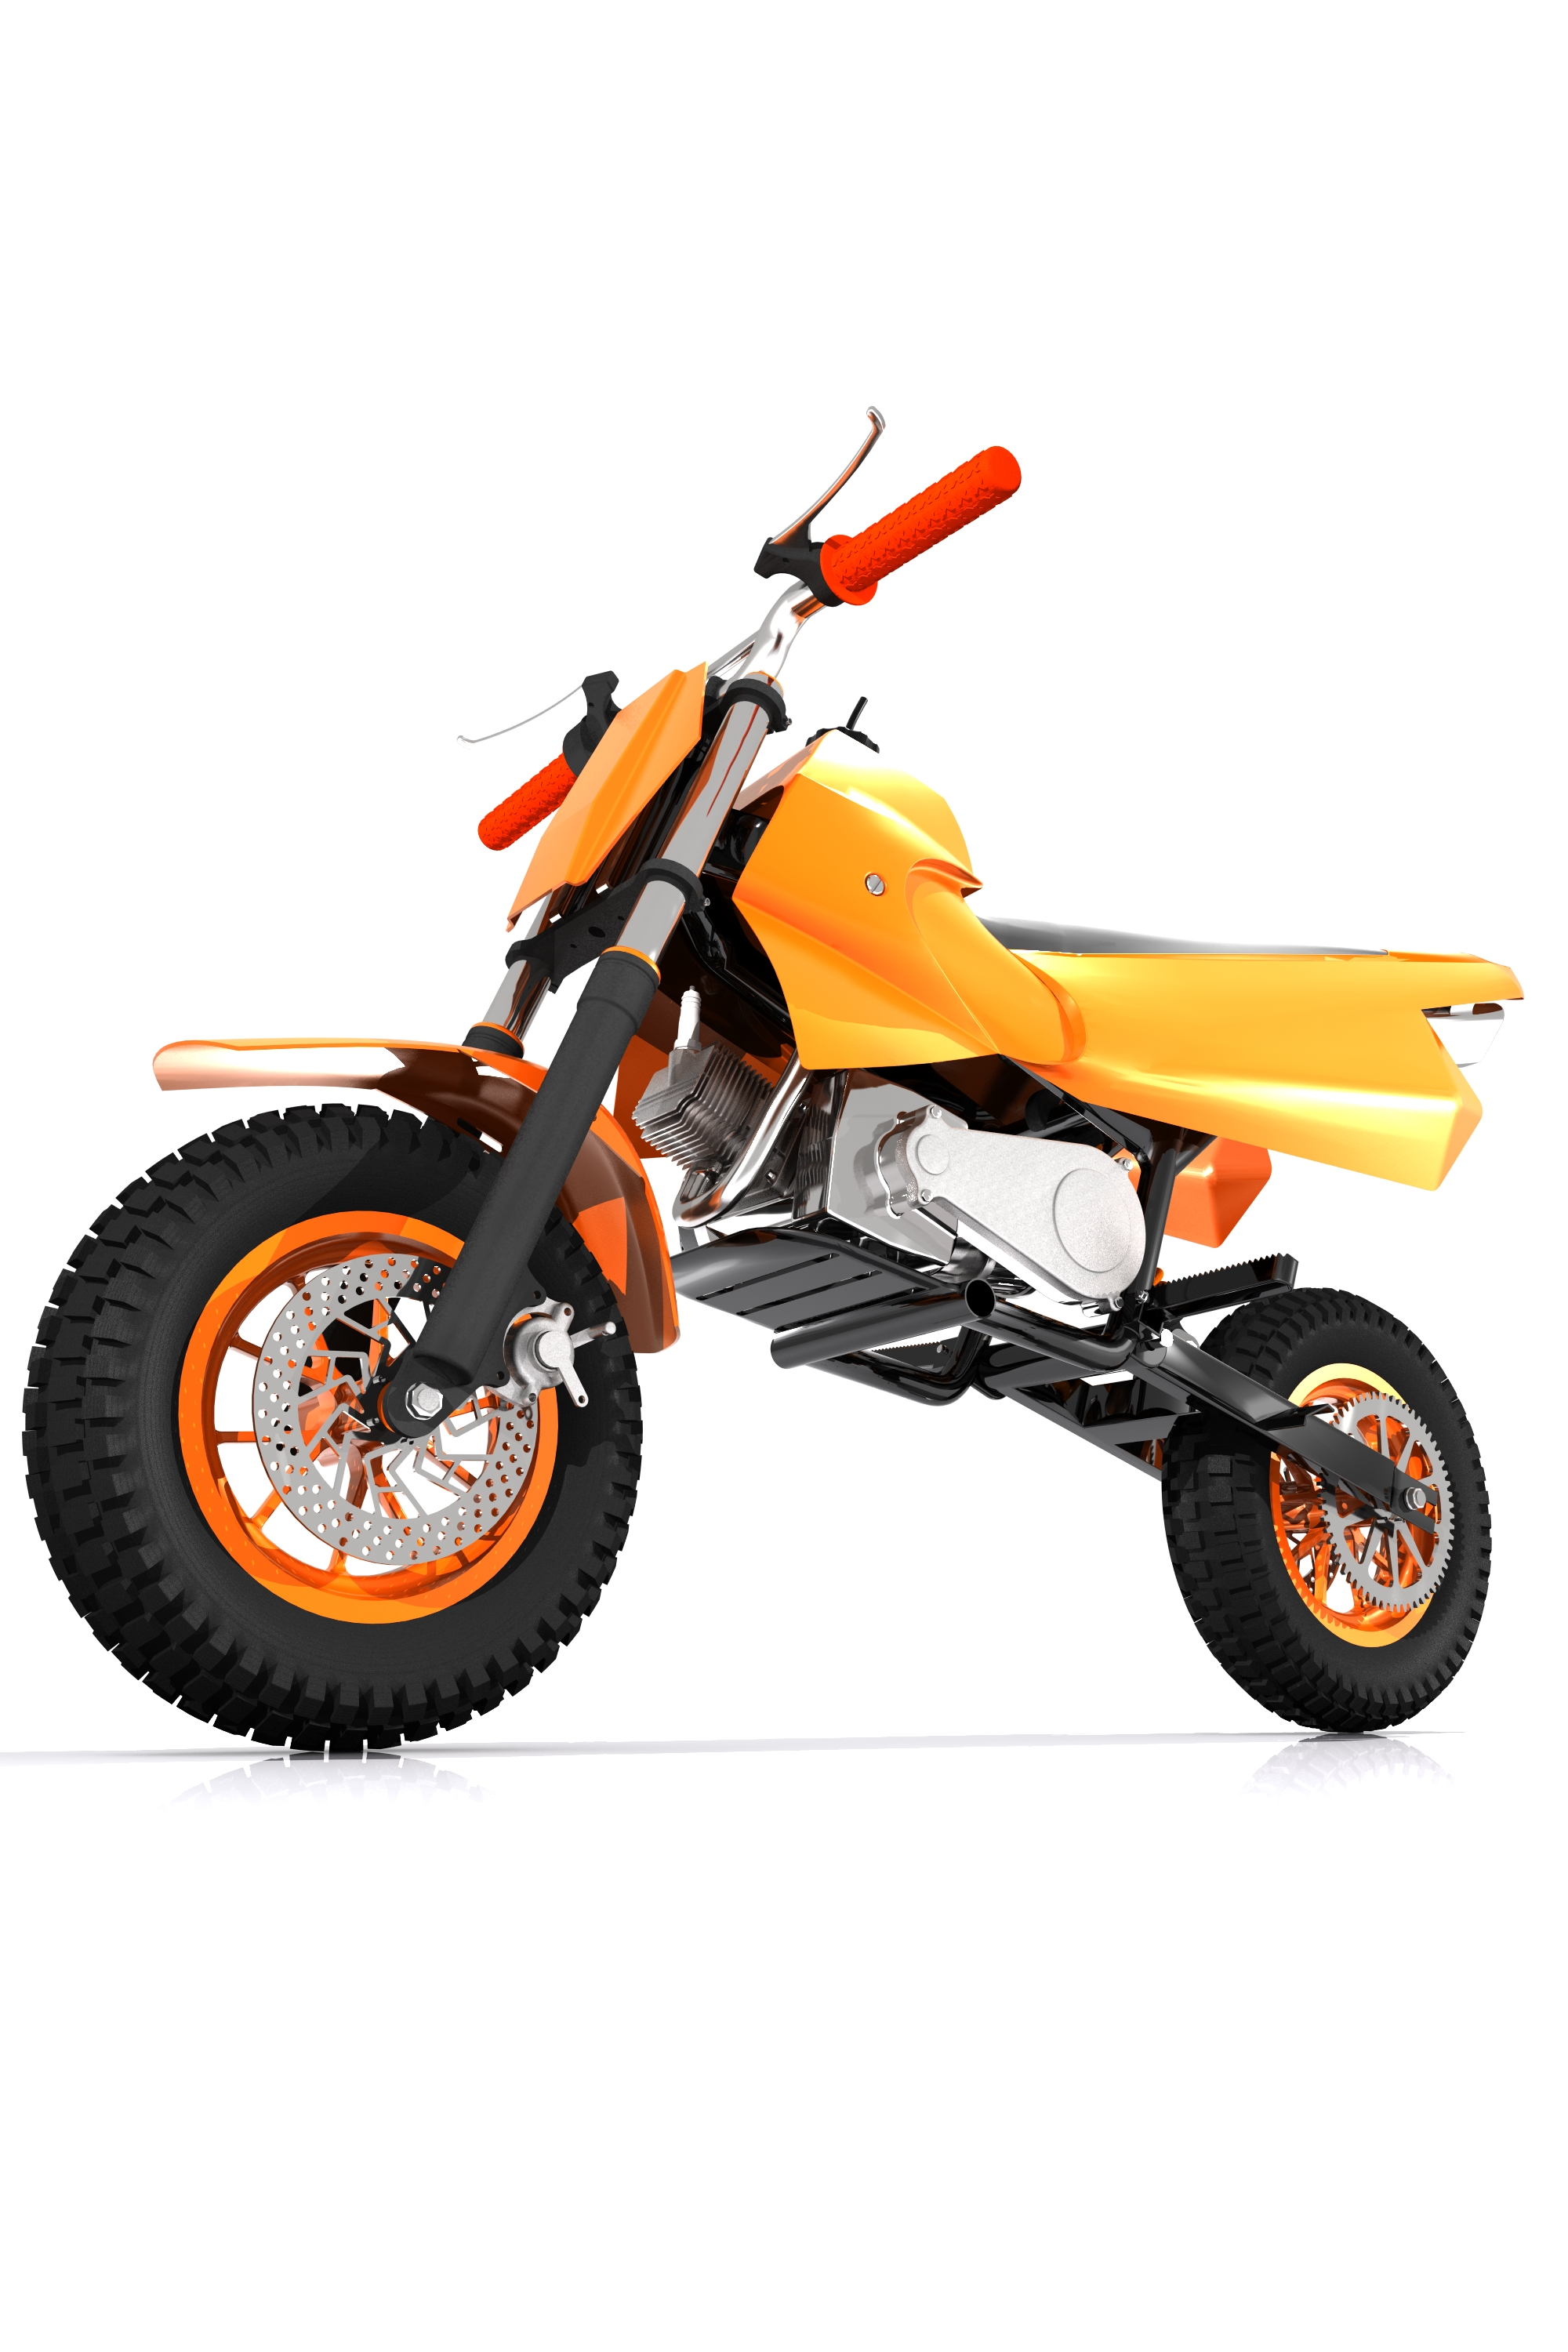 ricerche correlate a mini moto ktm 65 cc car interior design. Black Bedroom Furniture Sets. Home Design Ideas